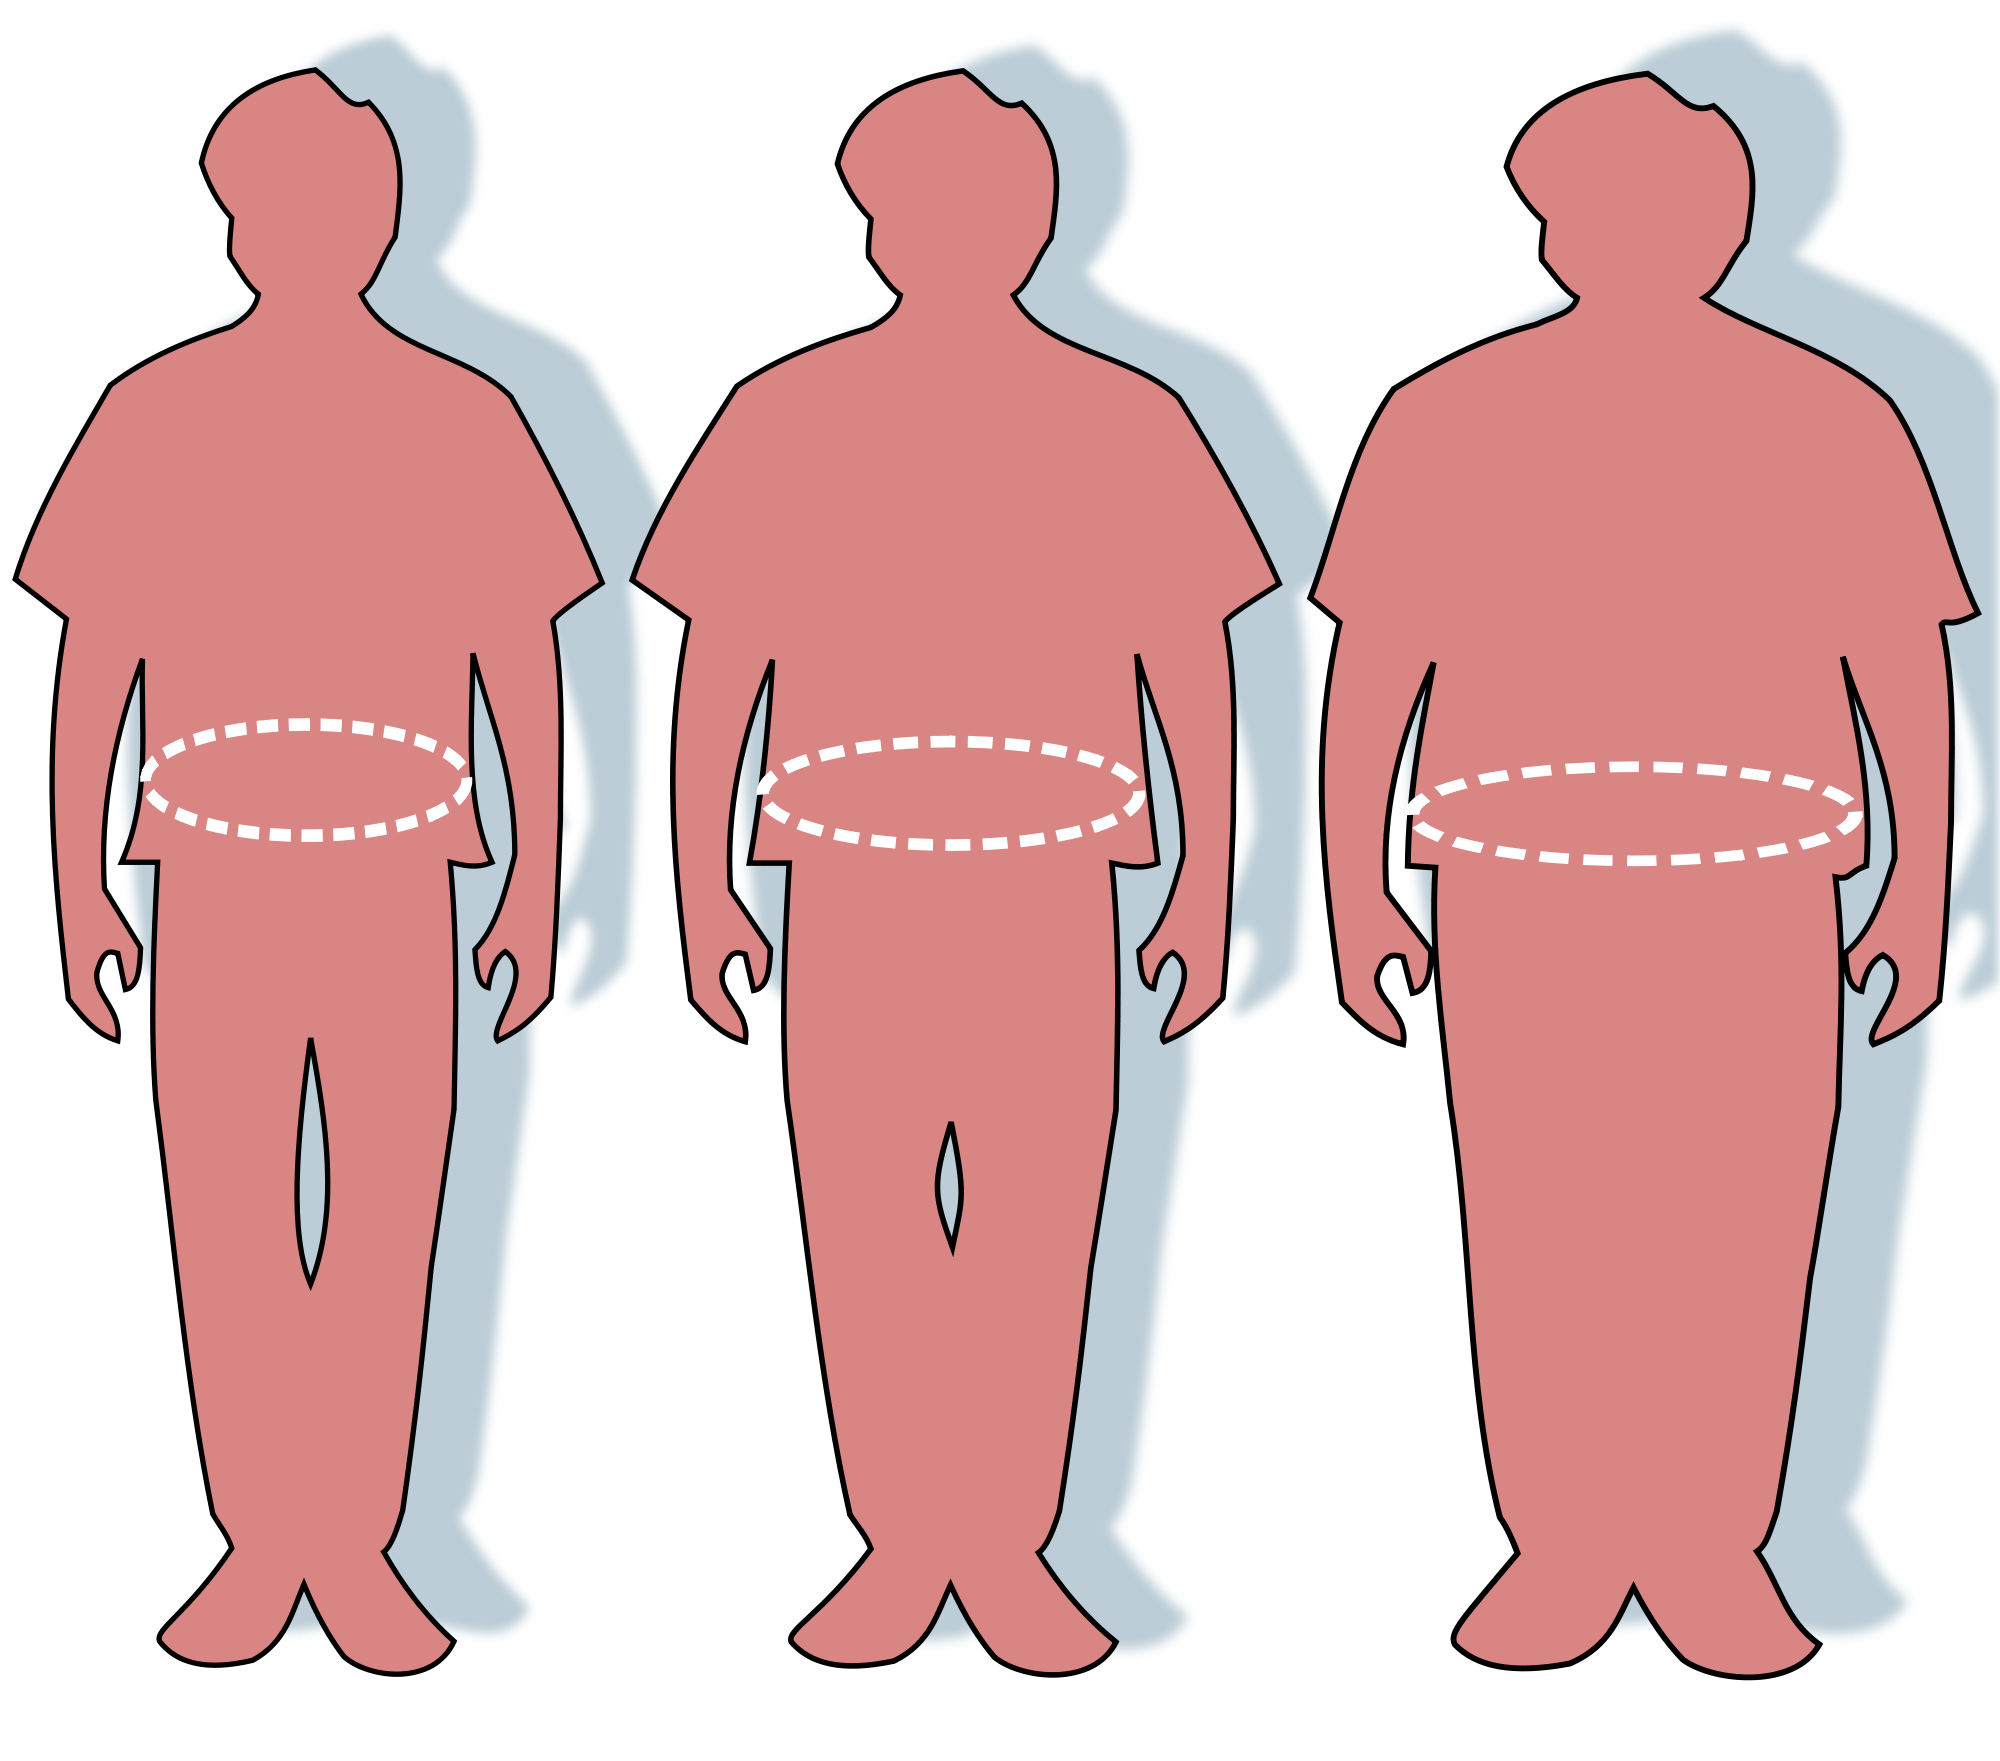 Loss clipart body weight. Eve clip arts for